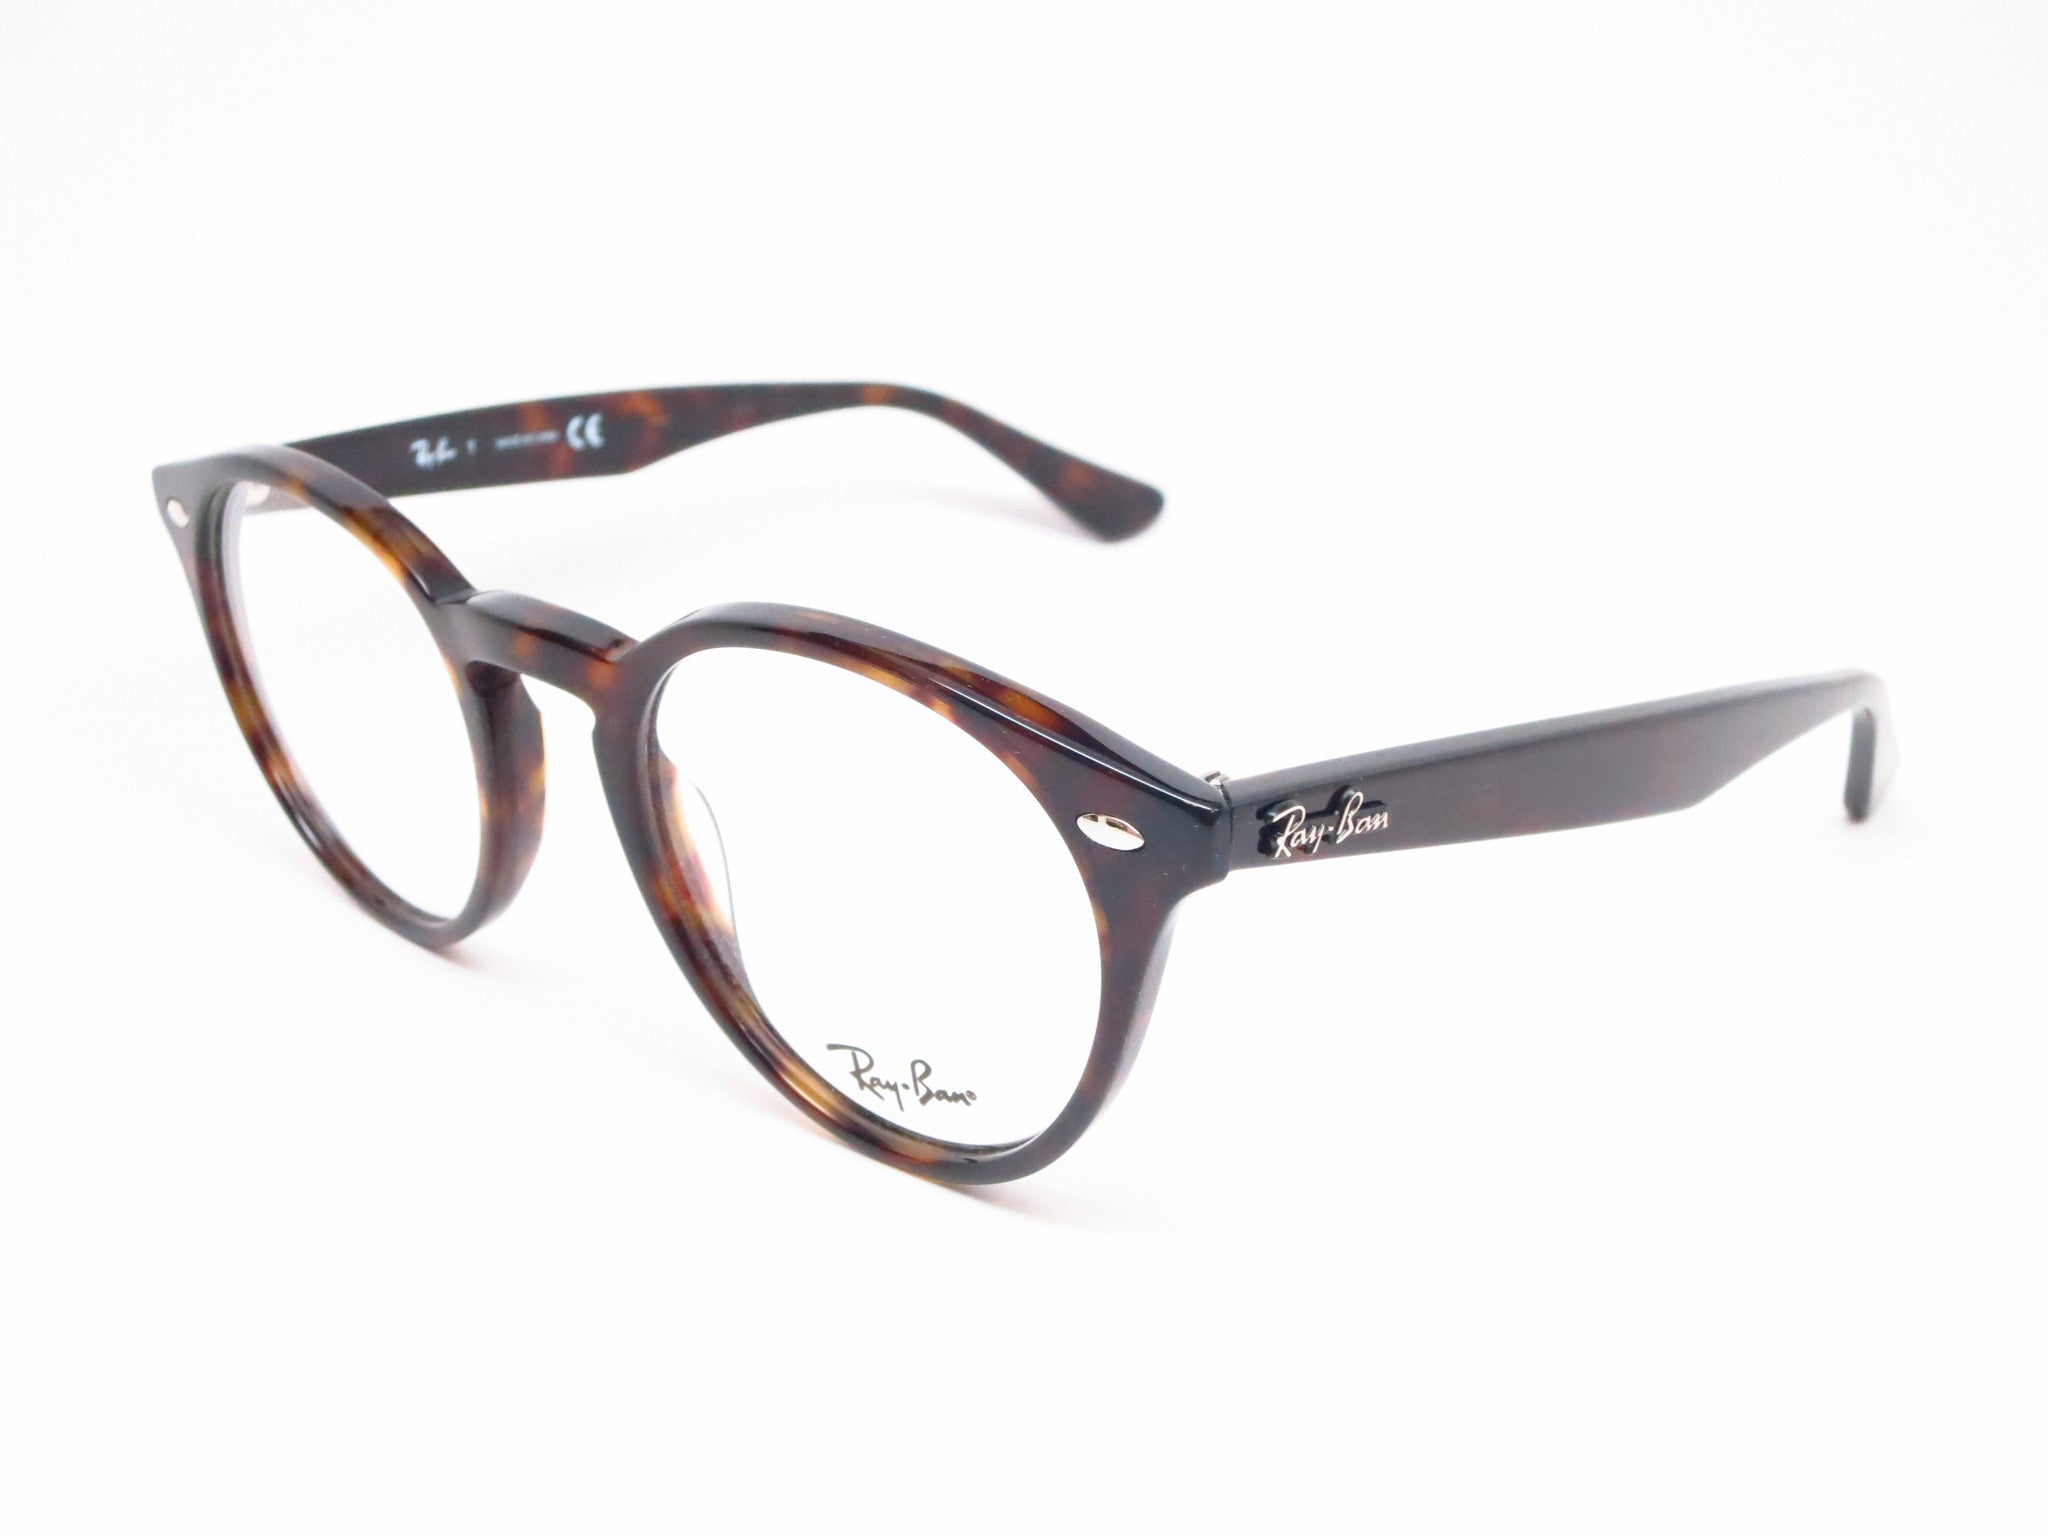 ray ban eyeglasses for sale  ray ban rb 2180v havana 2012 eyeglasses eye heart shades ray ban